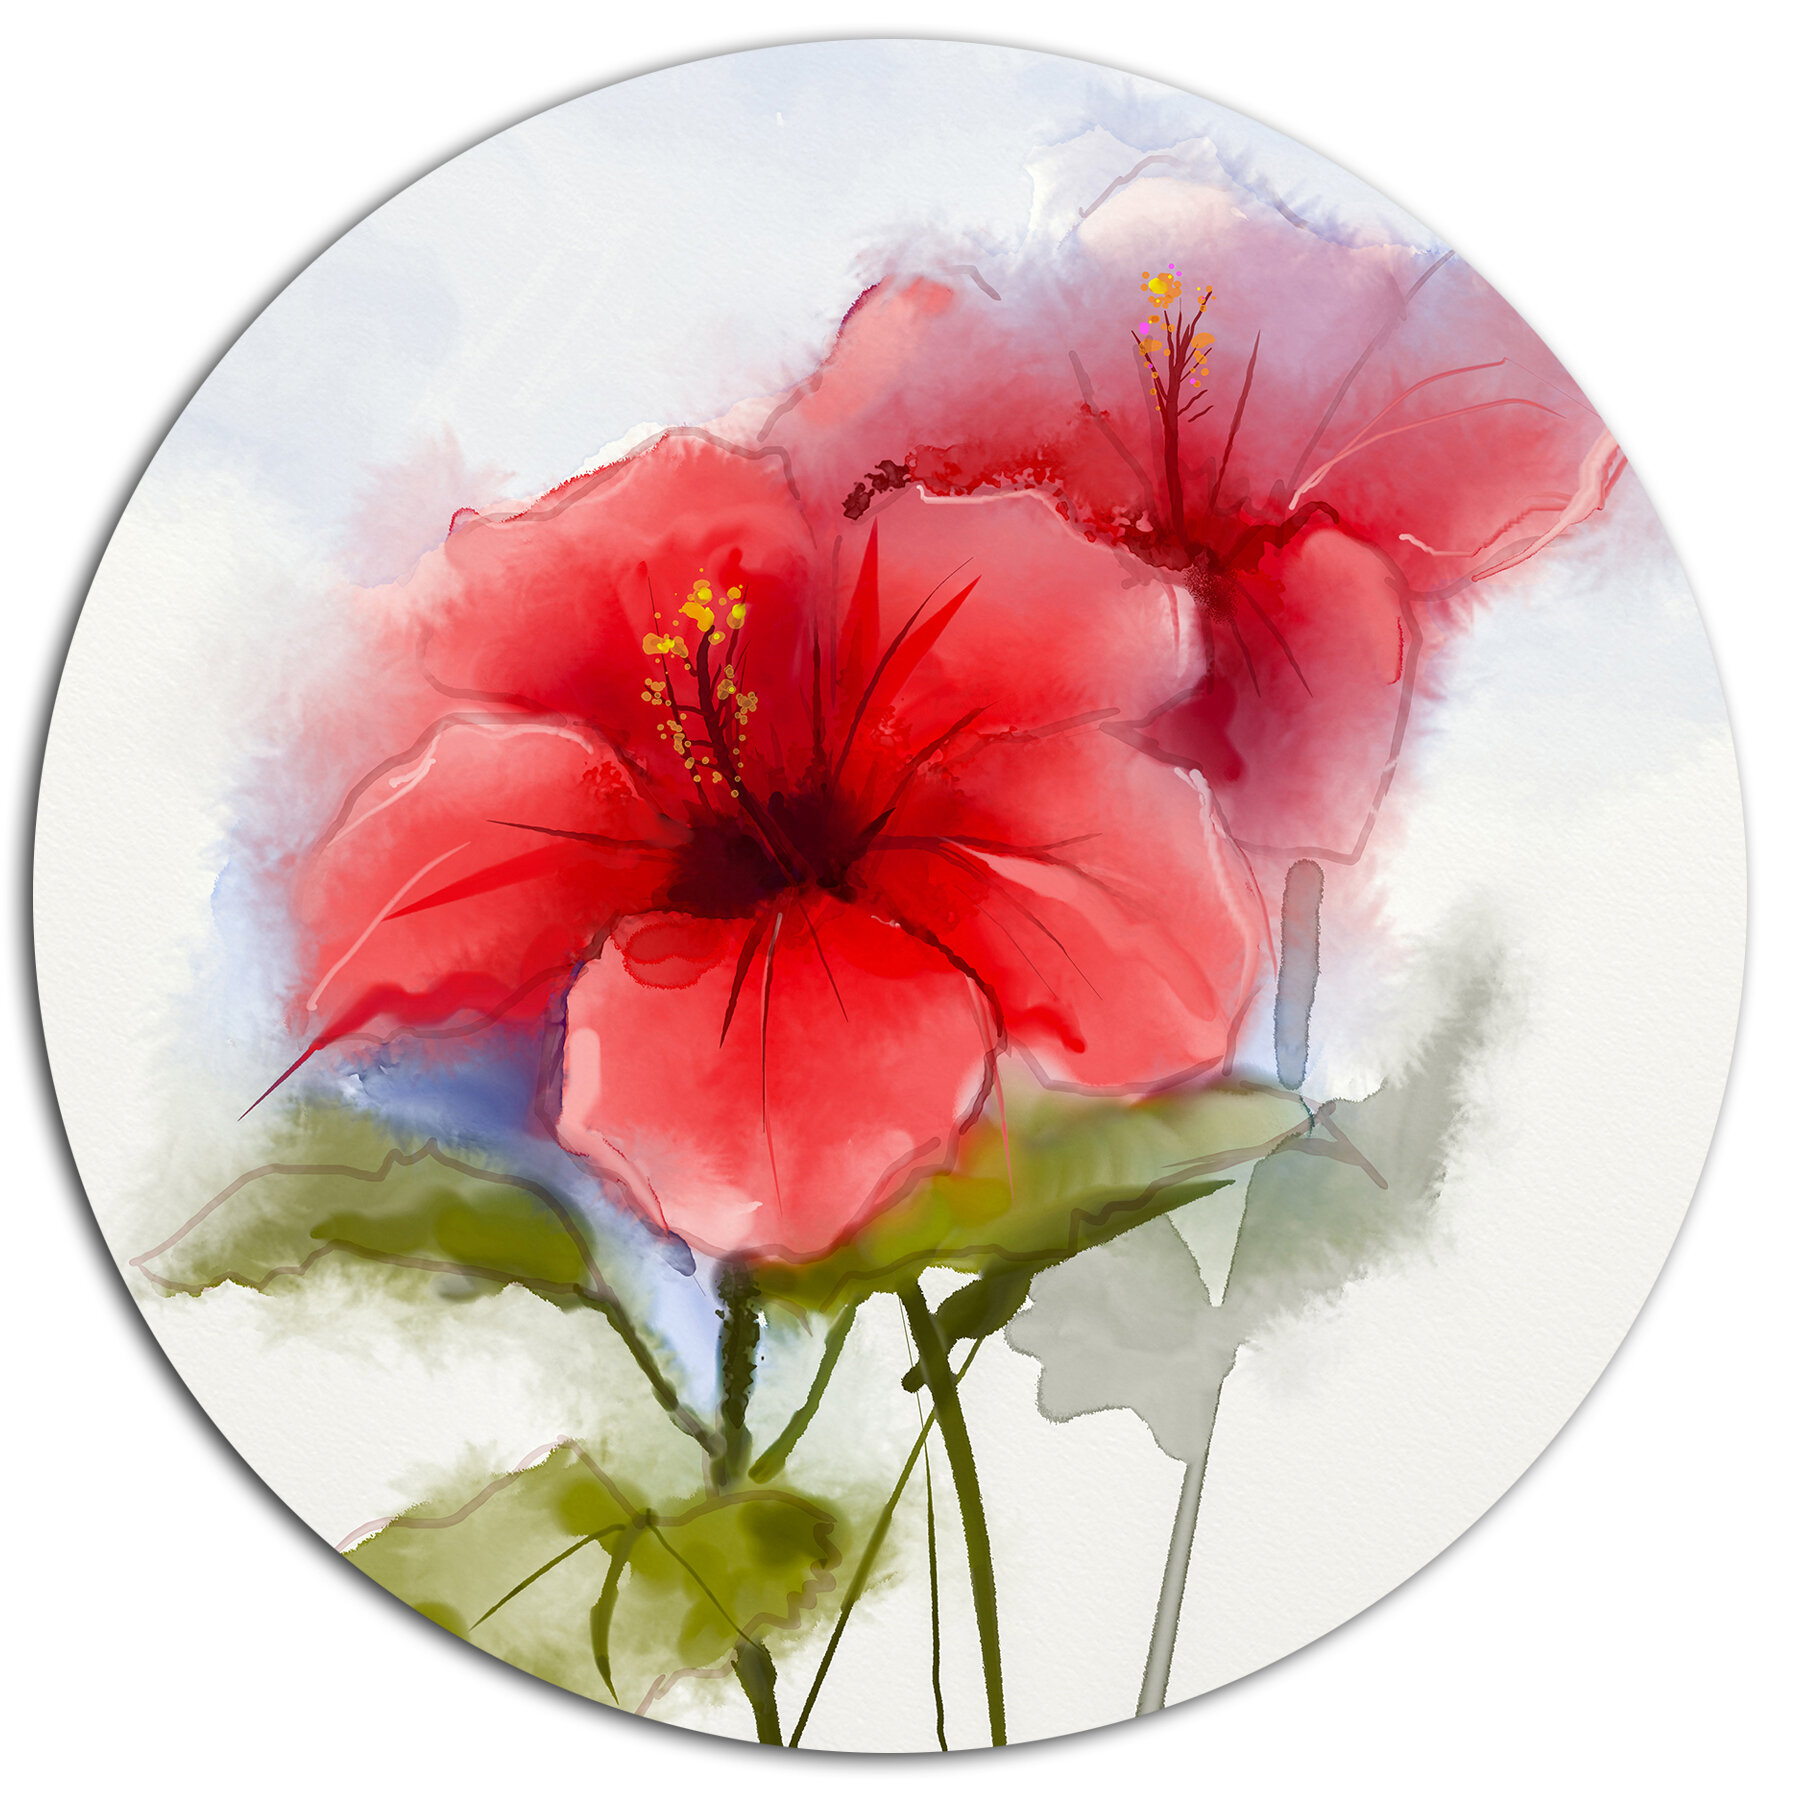 Designart Watercolor Painting Red Hibiscus Flower Oil Painting